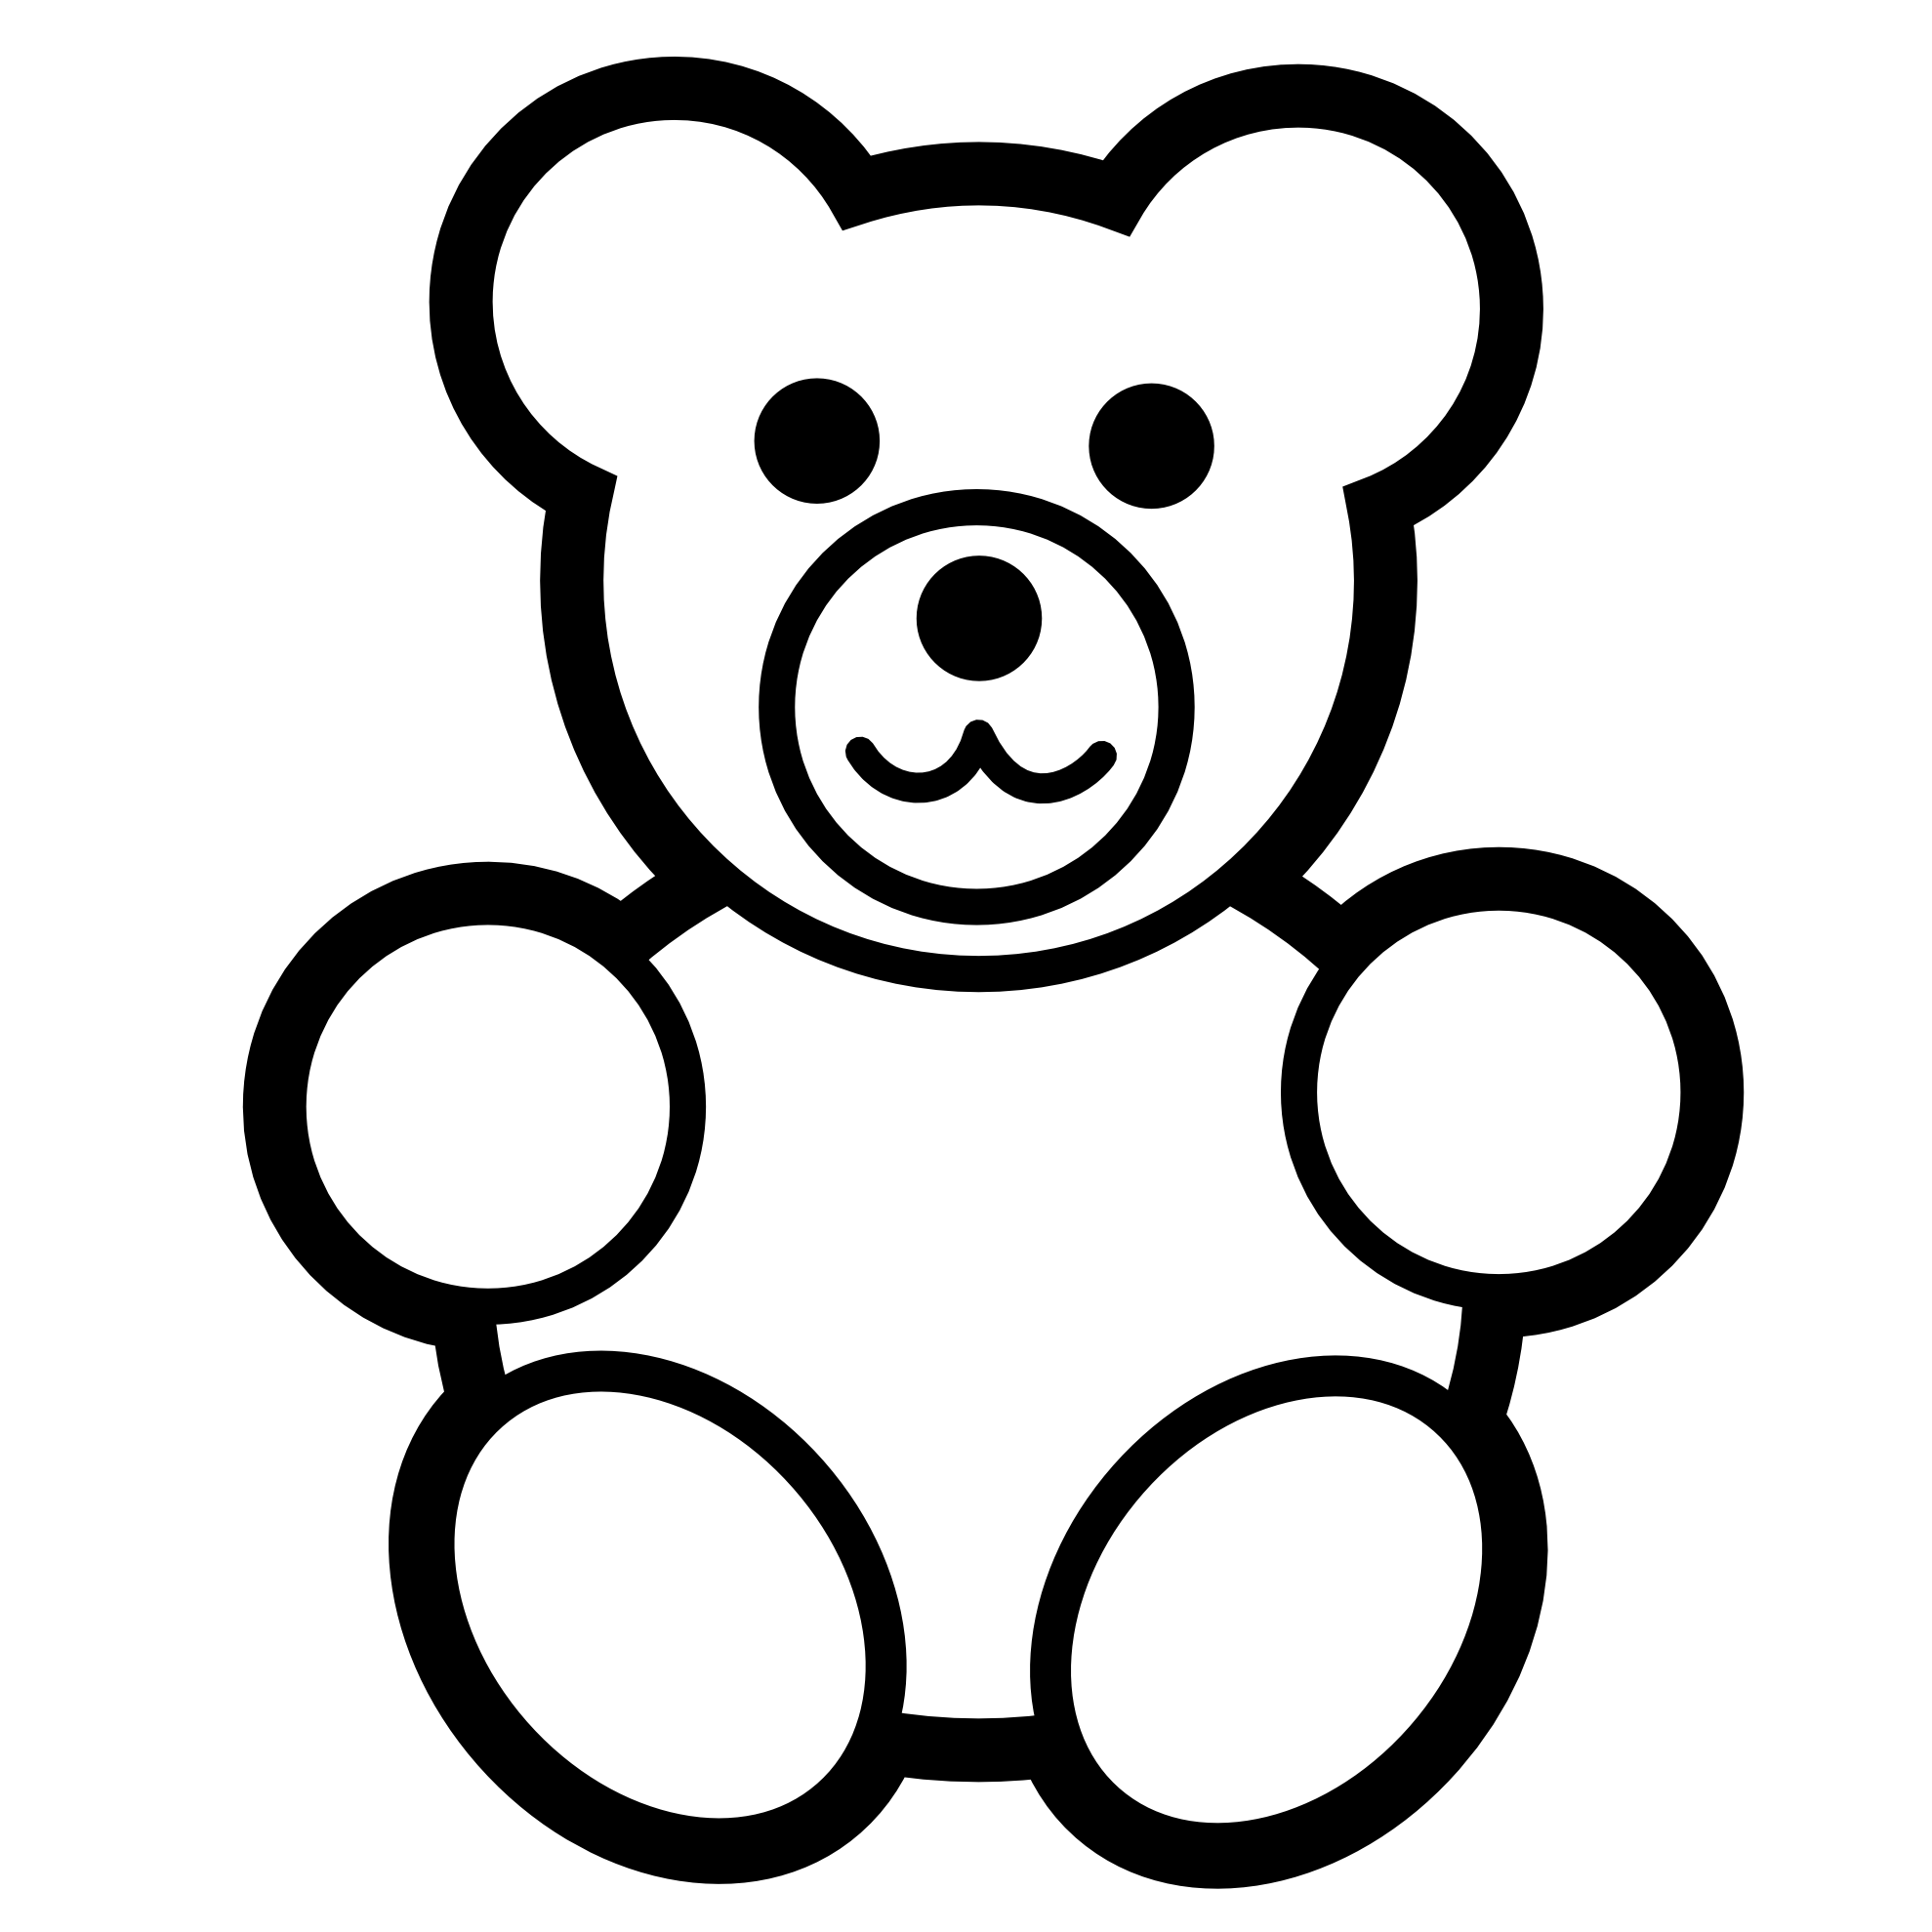 Black And White Line Drawings Of Animals : Numbers clipart for kids black and white panda